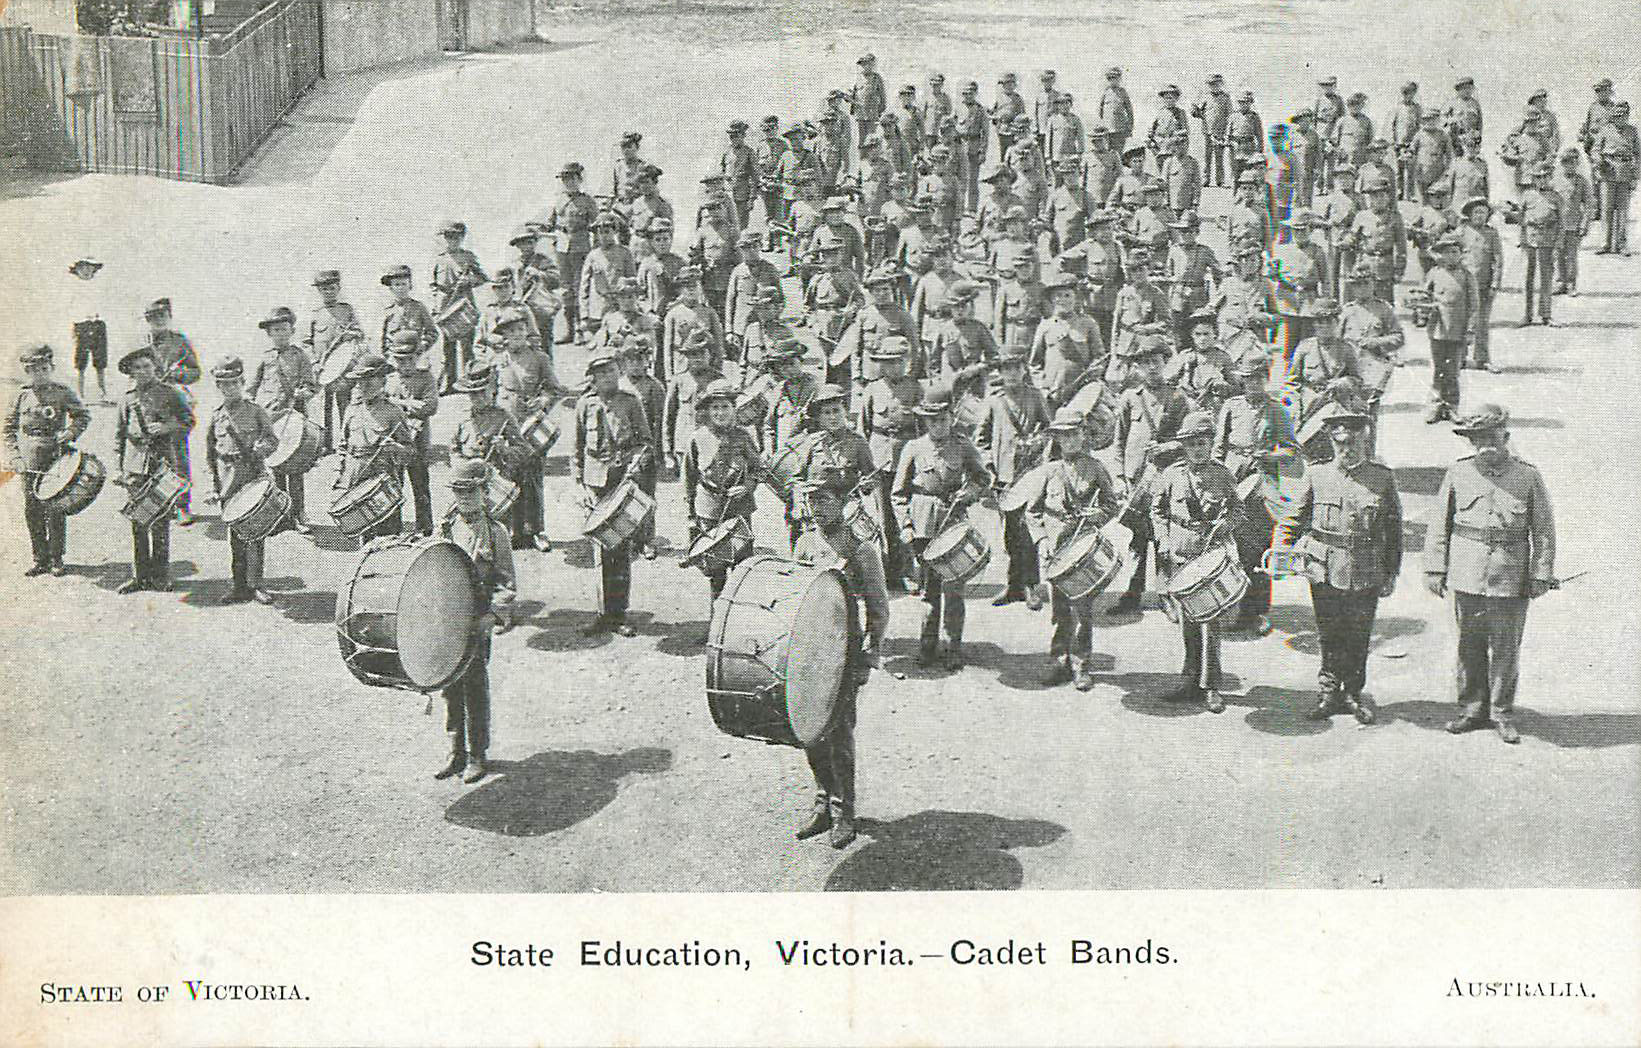 Cadet Bands, State Education, Victoria, Australia